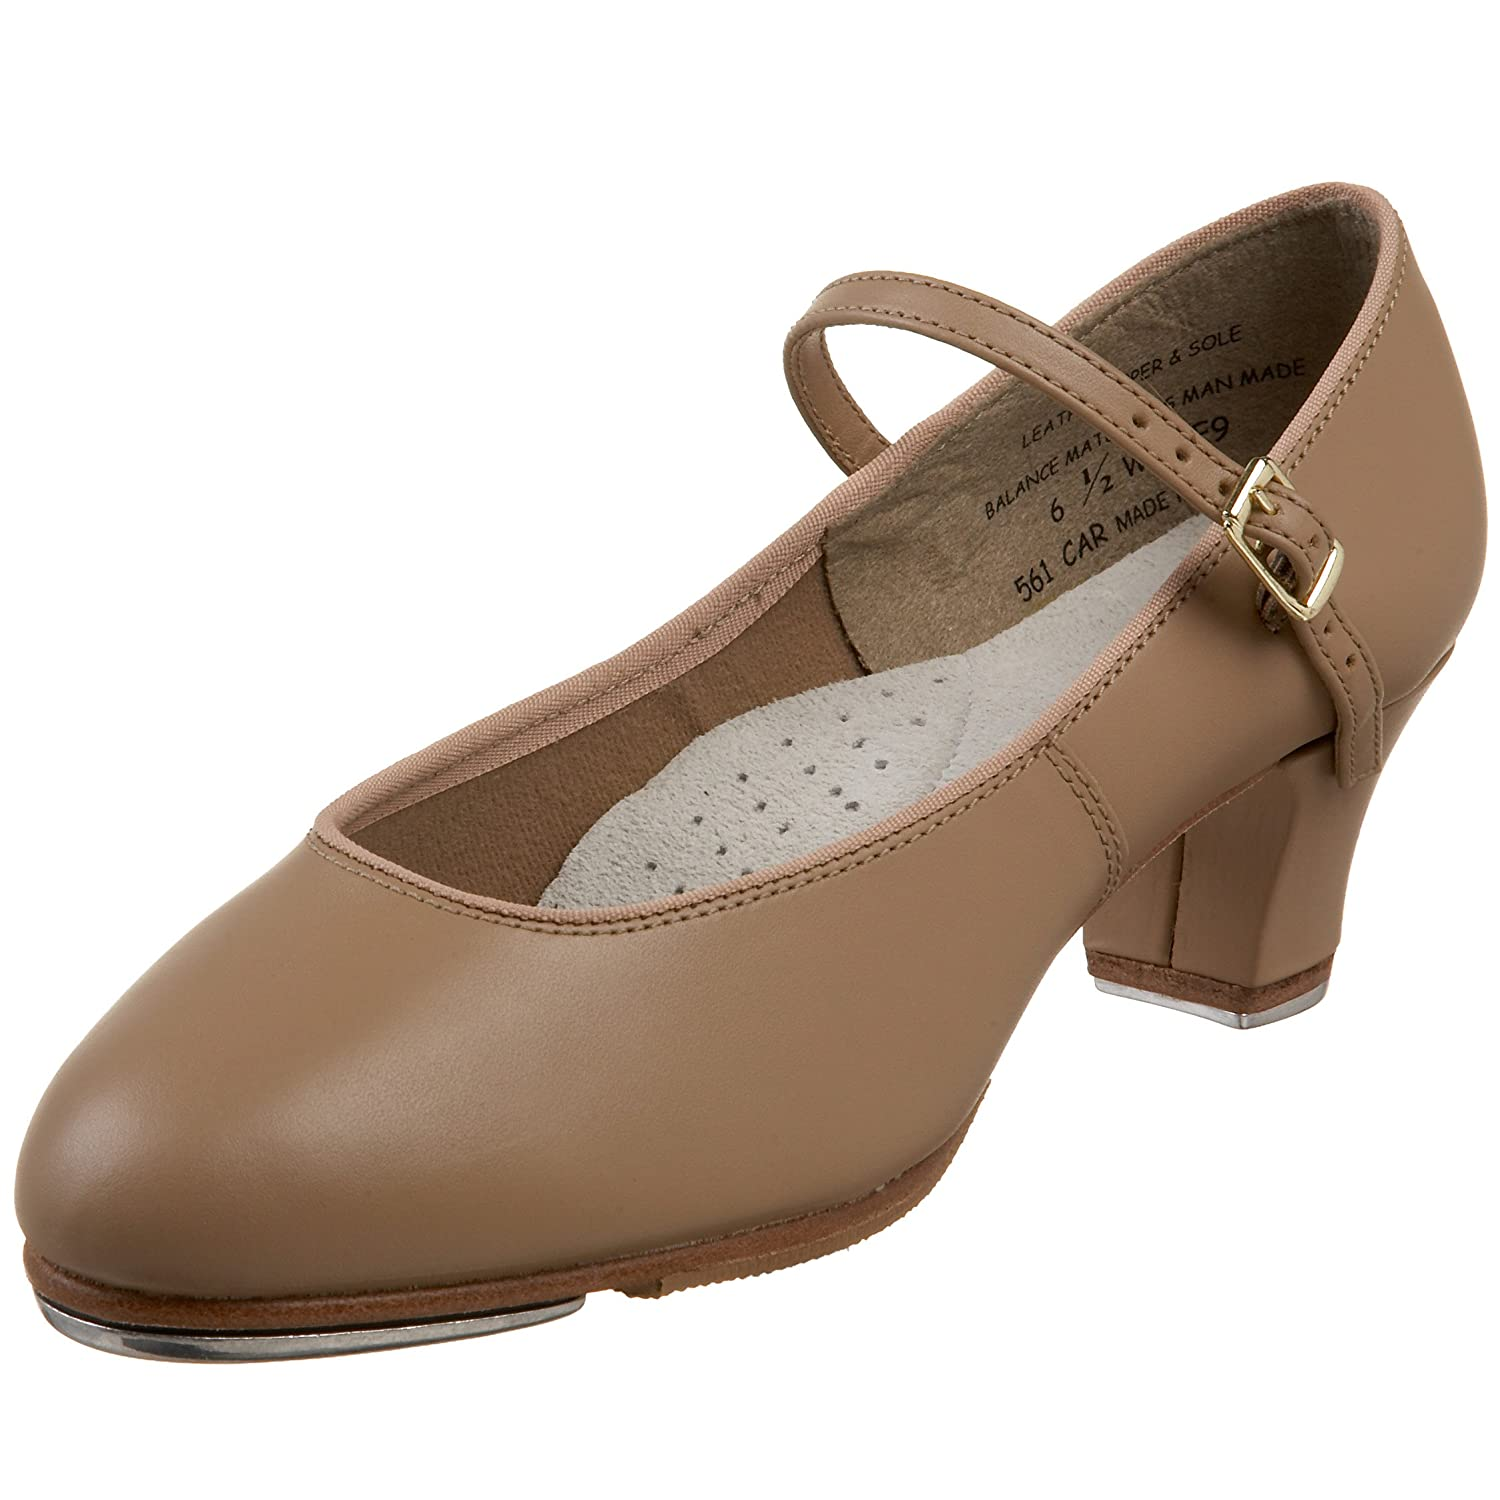 Capezio Women's Tap Jr. Footlight Tap Shoe B002CO3P5E 9 B(M) US|Caramel